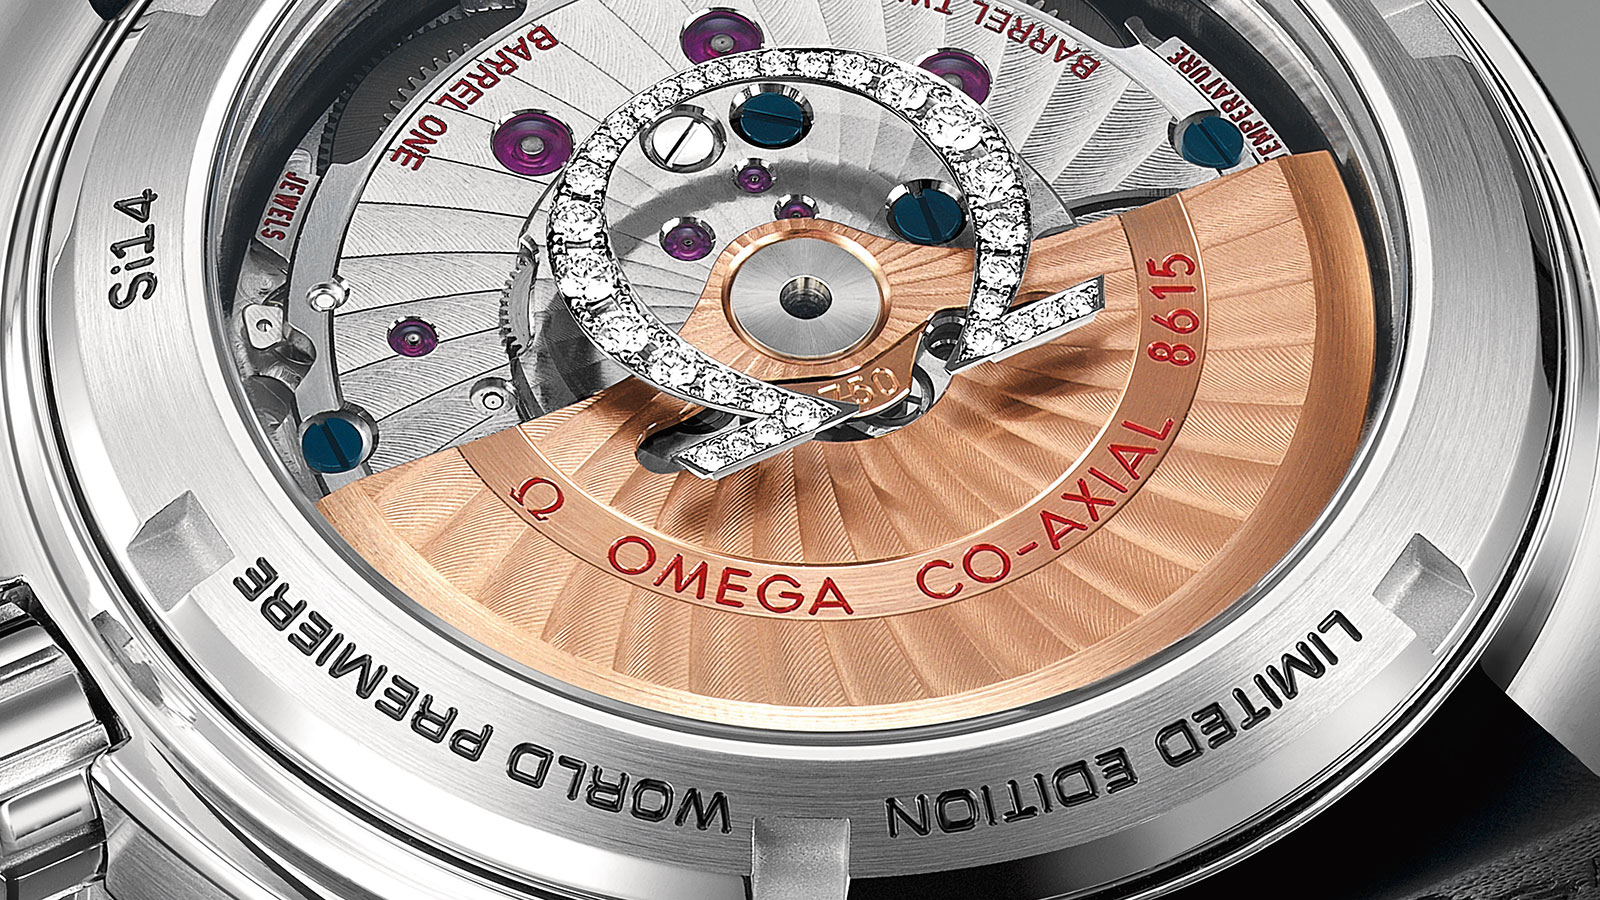 Seamaster Planet Ocean 600 M Planet Ocean 600M Omega Co‑Axial GMT 43,5 mm Referenz - 232.98.44.22.01.001